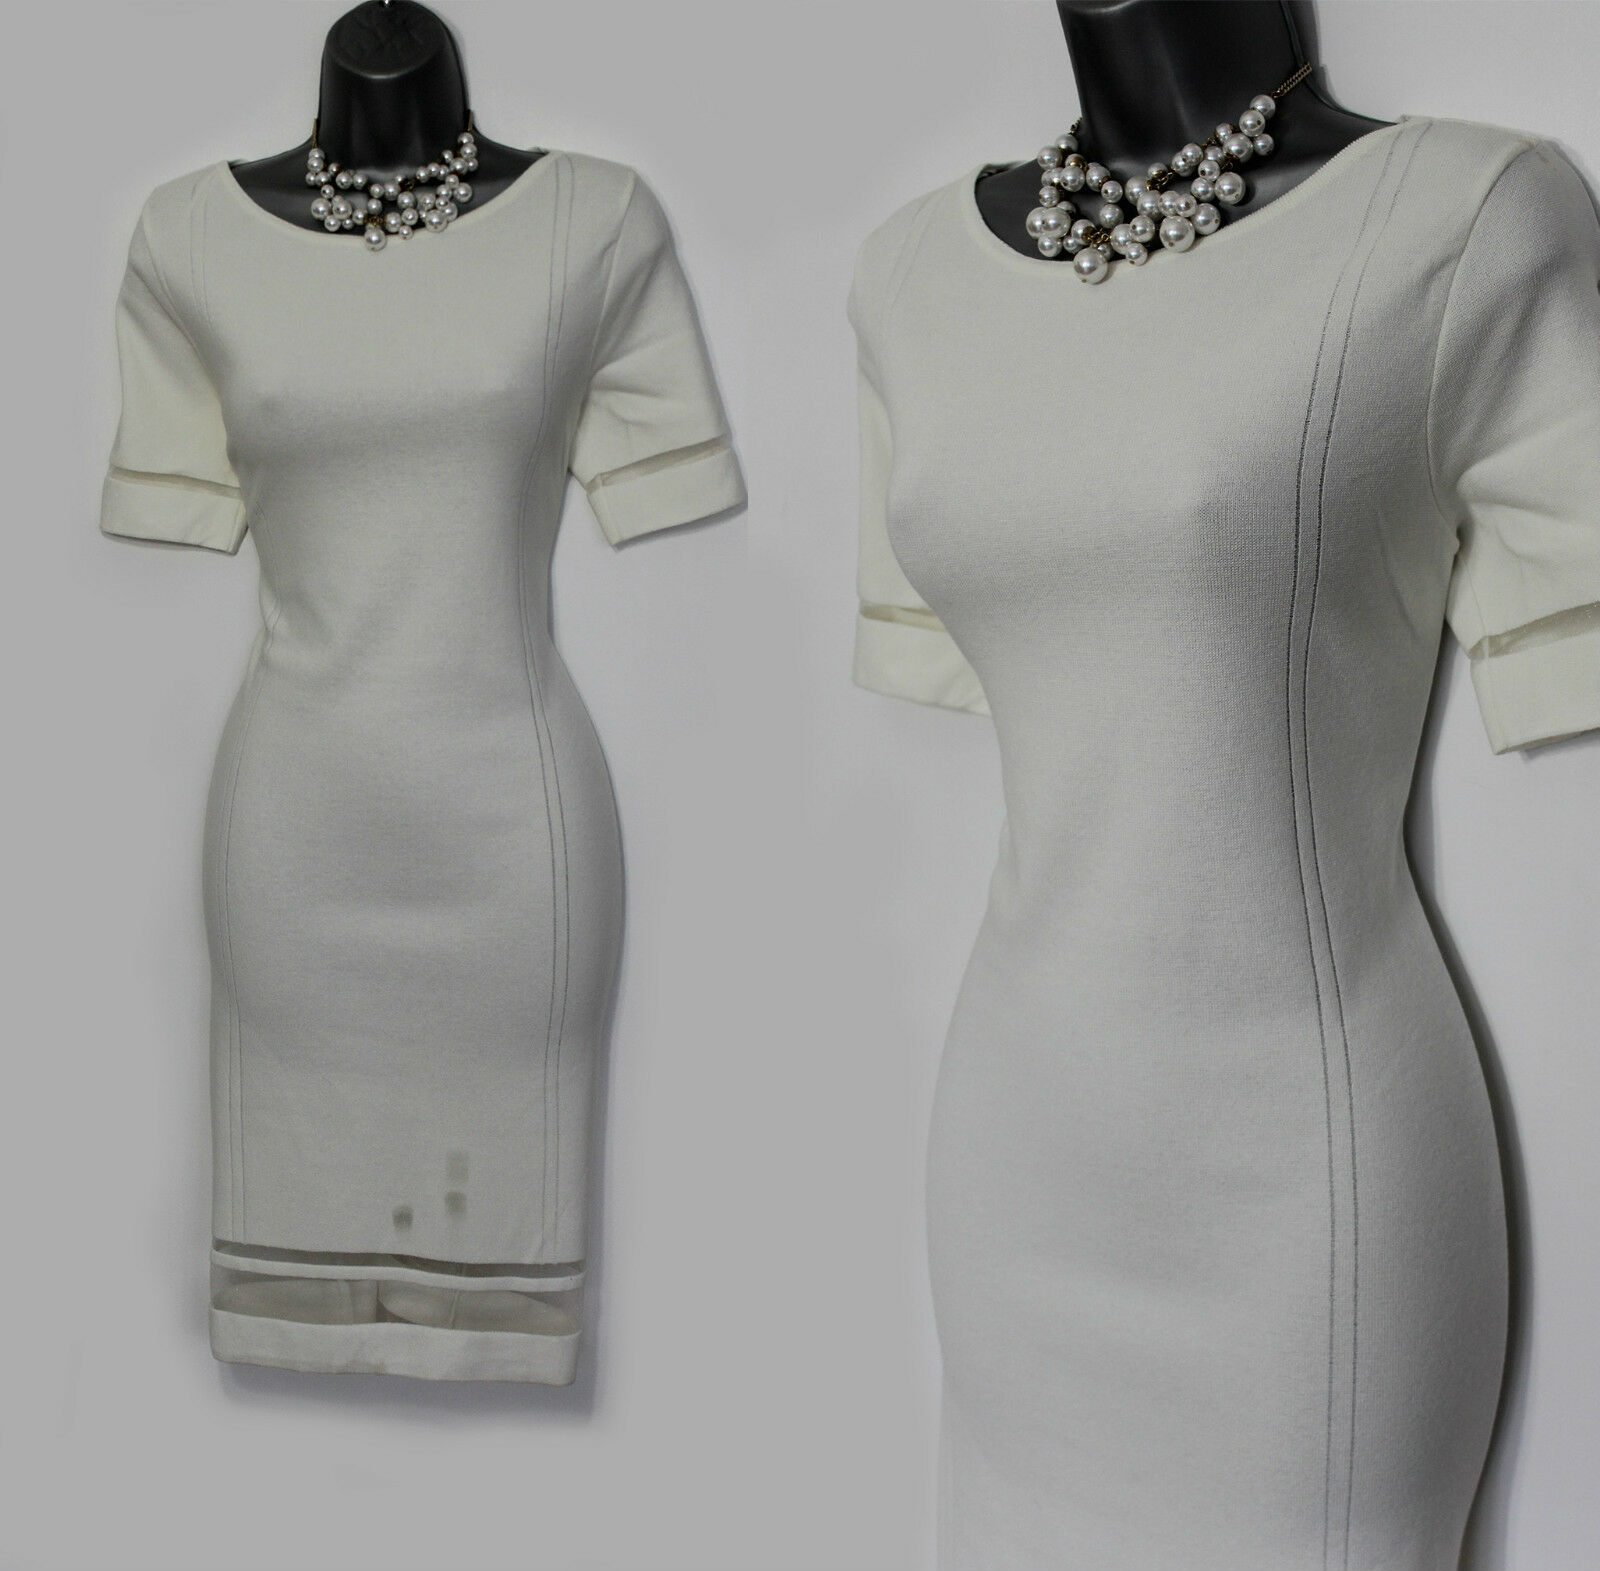 MONSOON Ivory Knitted Embellished Short Sleeves Dress Wedding Evening